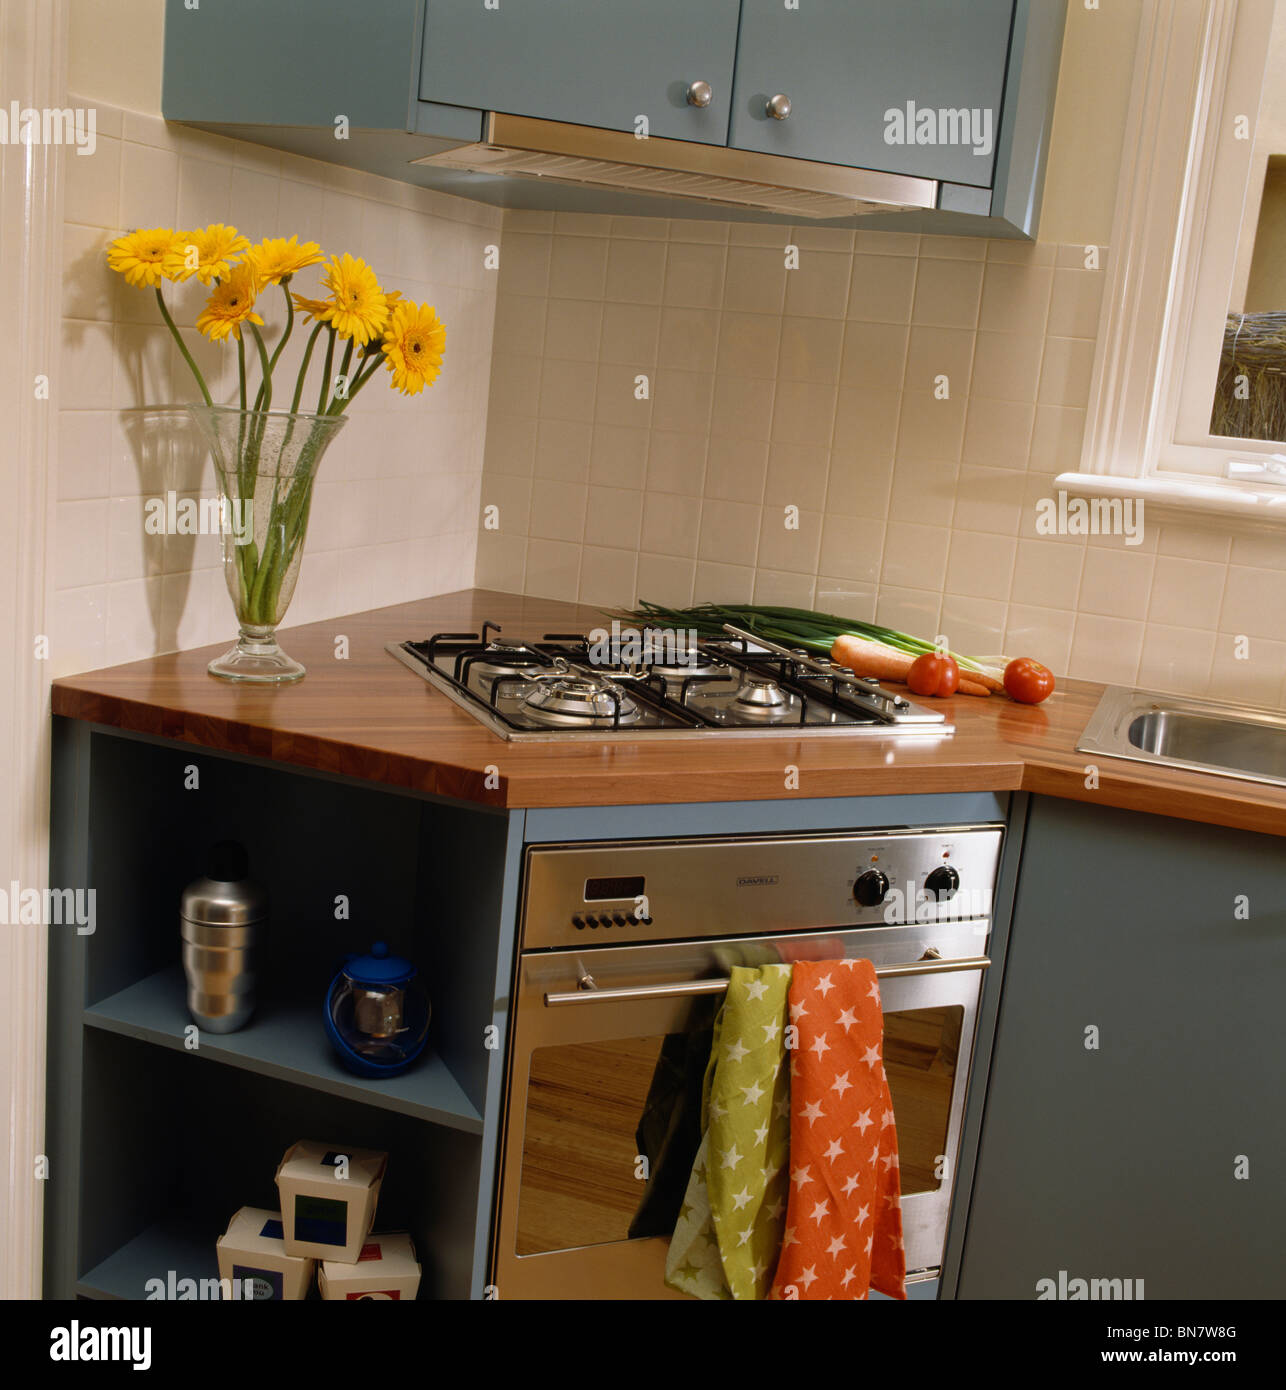 Eckunterschrank Küche 80x80 Hob And Oven In Fitted Corner Unit In Modern Kitchen Stock